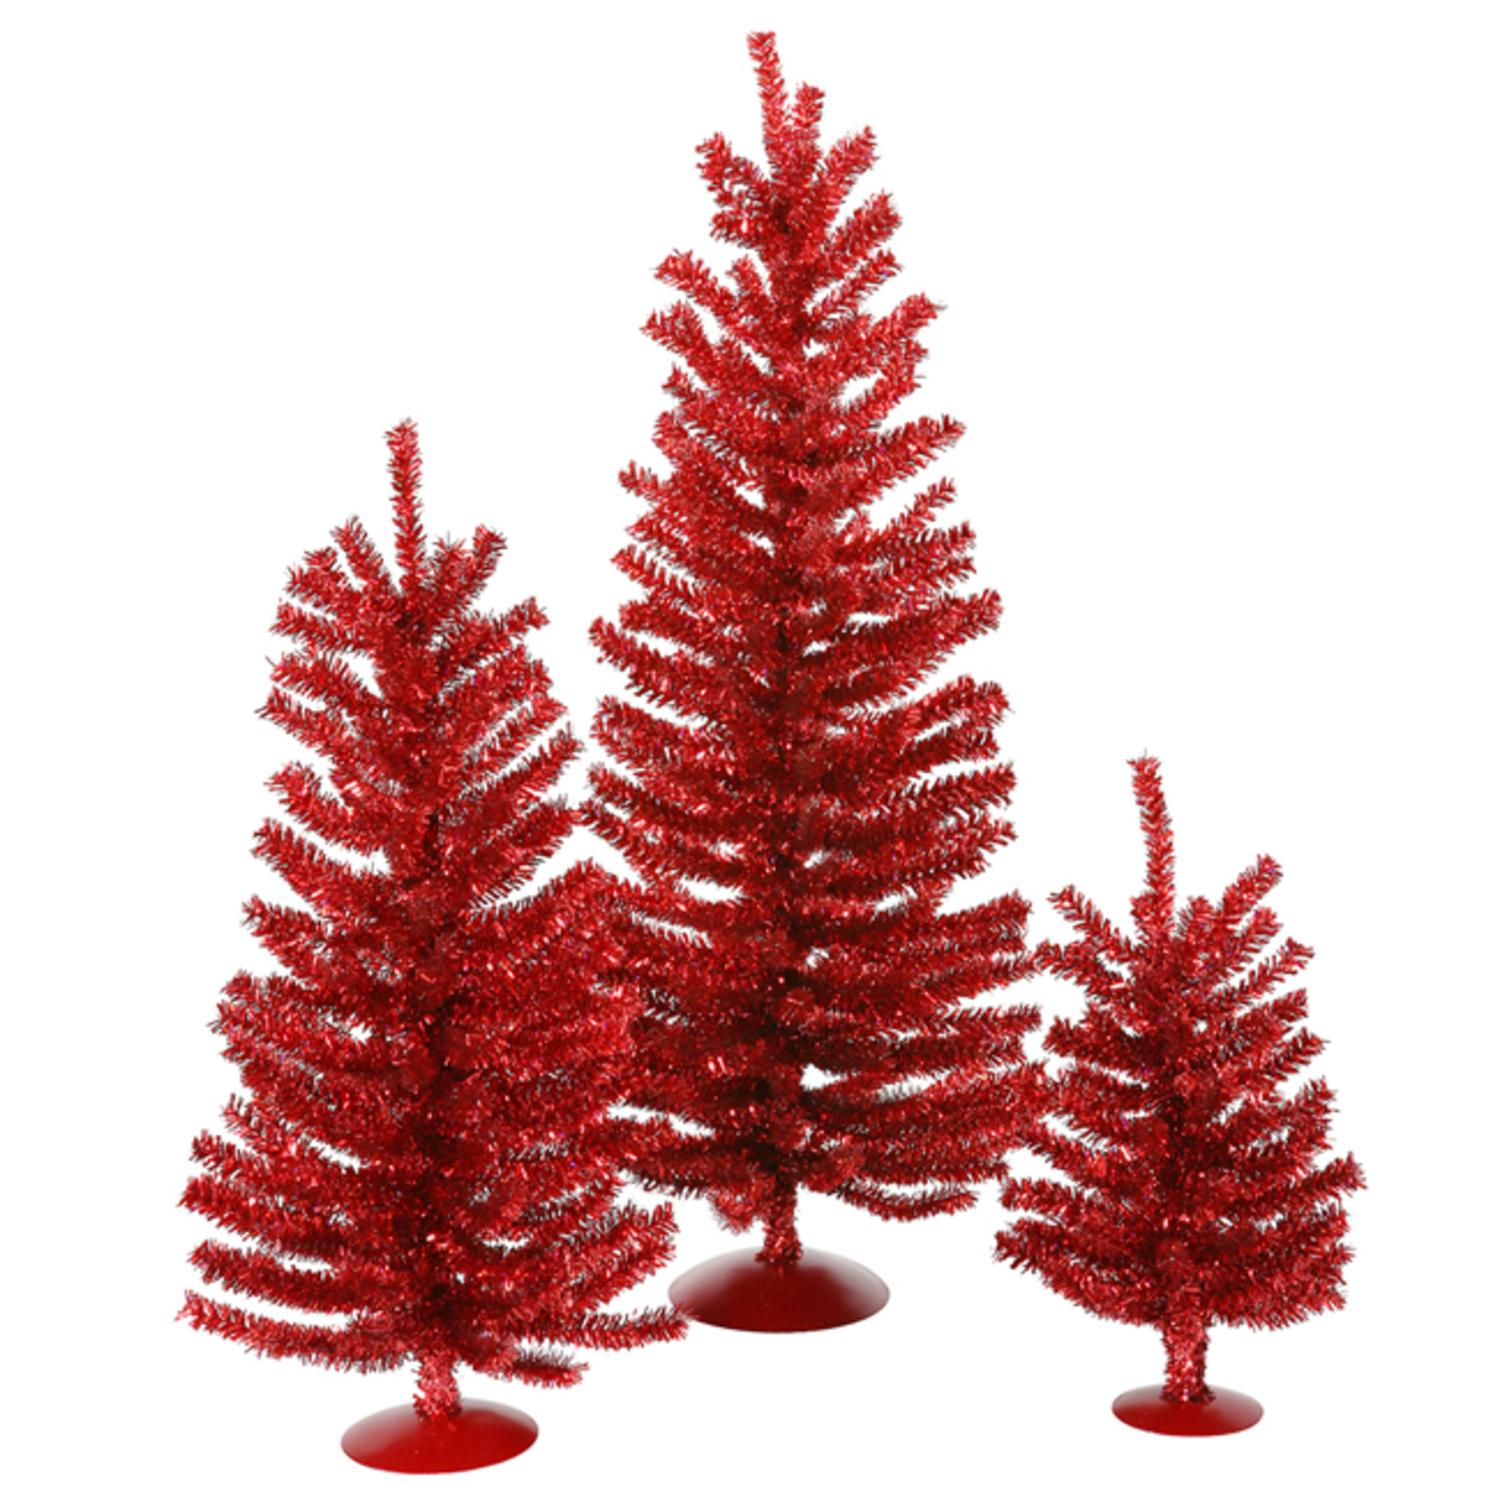 "Set of 3 Red Artificial Tinsel Christmas Trees 12"", 18"" & 24"" - Unlit"